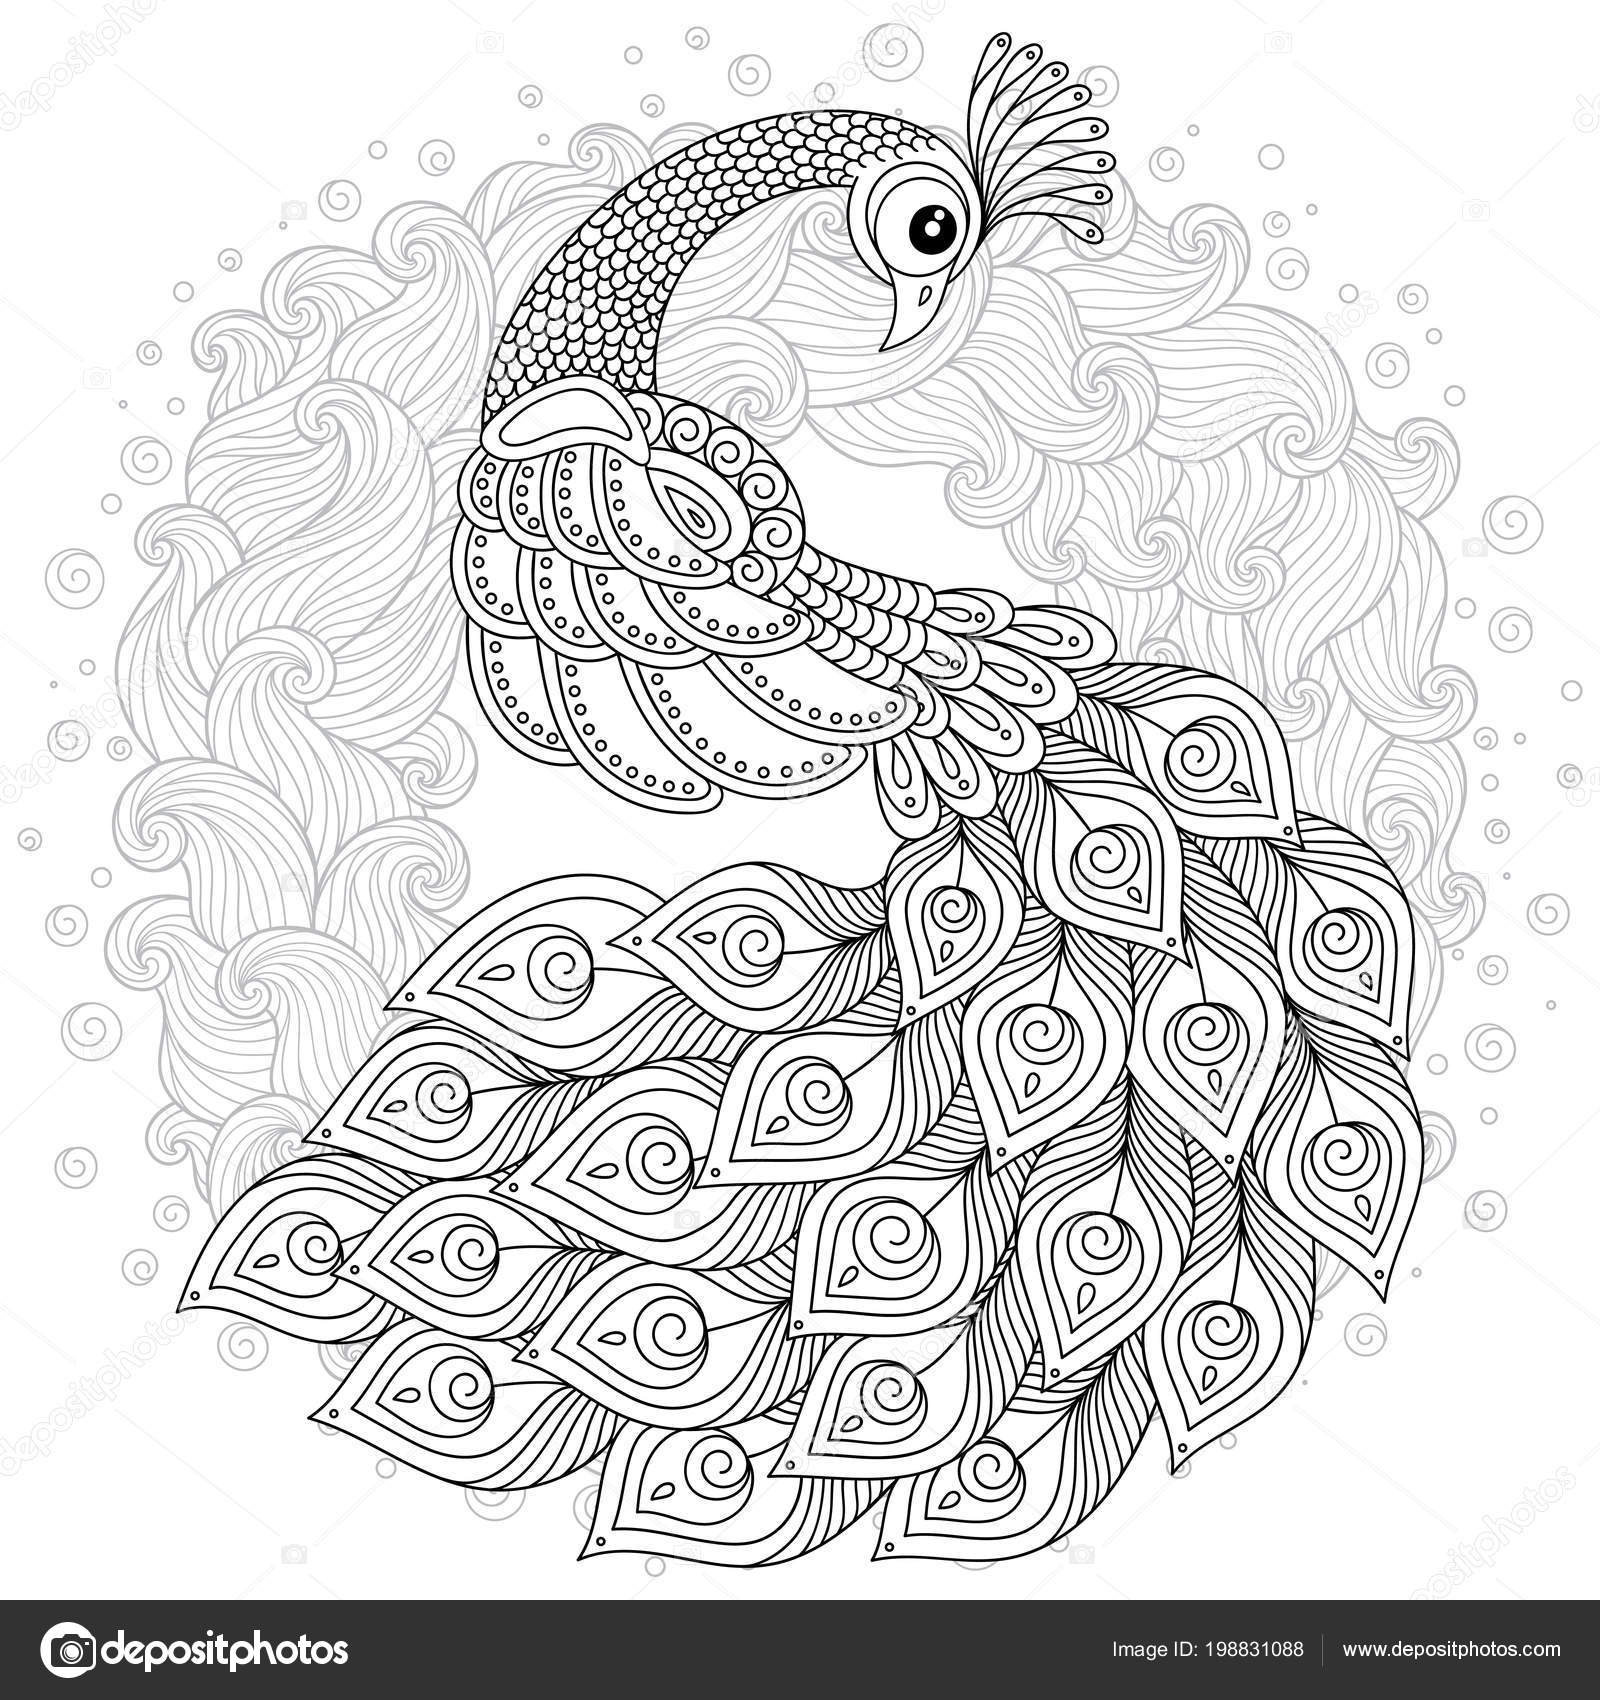 peacock color page hand drawn peacock stress coloring page high details peacock color page